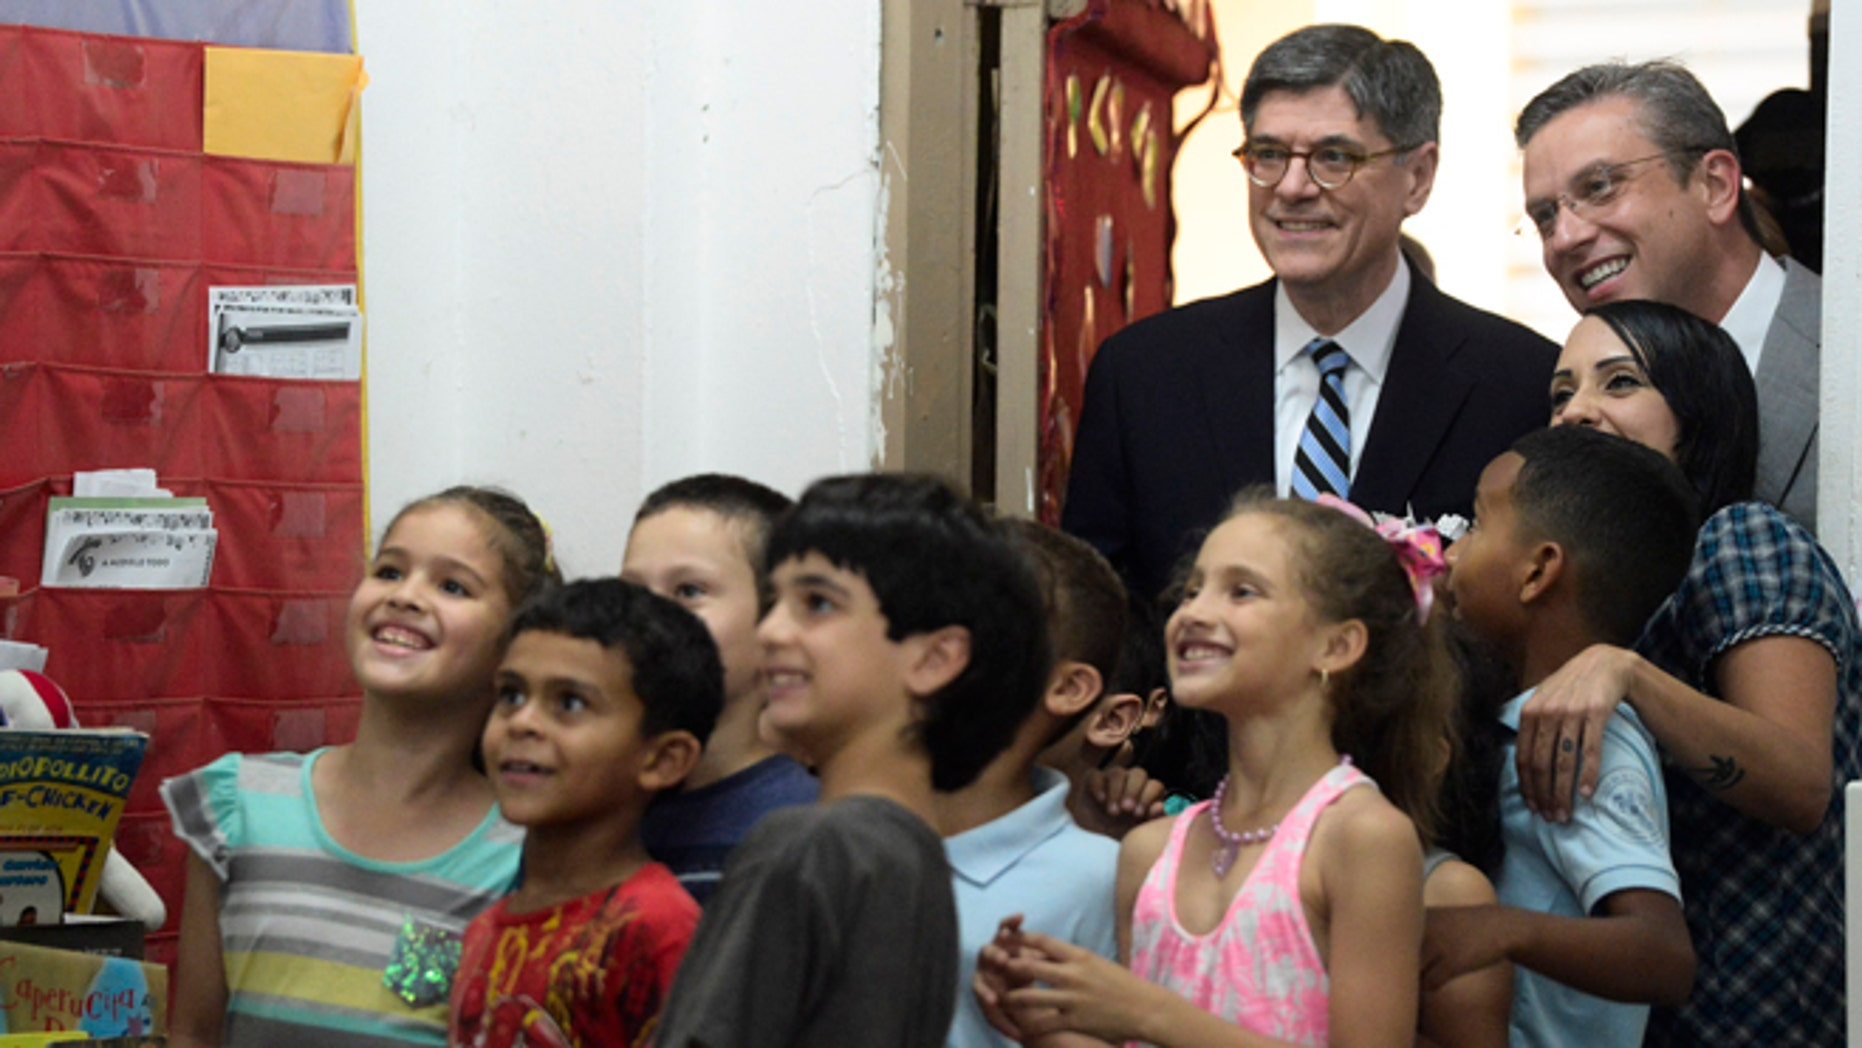 U.S. Treasury Secretary Jacob Lew, top, second from right, poses for photos with students as he takes a classroom tour with Puerto Rico Governor Alejandro Garcia Padilla, top right, at the Eleanor Roosevelt Elementary School in San Juan, Puerto Rico, Monday, May 9, 2016. Lew hoped to jump-start congressional efforts to aid debt-stricken Puerto Rico, traveling to the U.S. territory on Monday and focusing on basic services in jeopardy at public hospitals and schools. (AP Photo/Carlos Giusti)